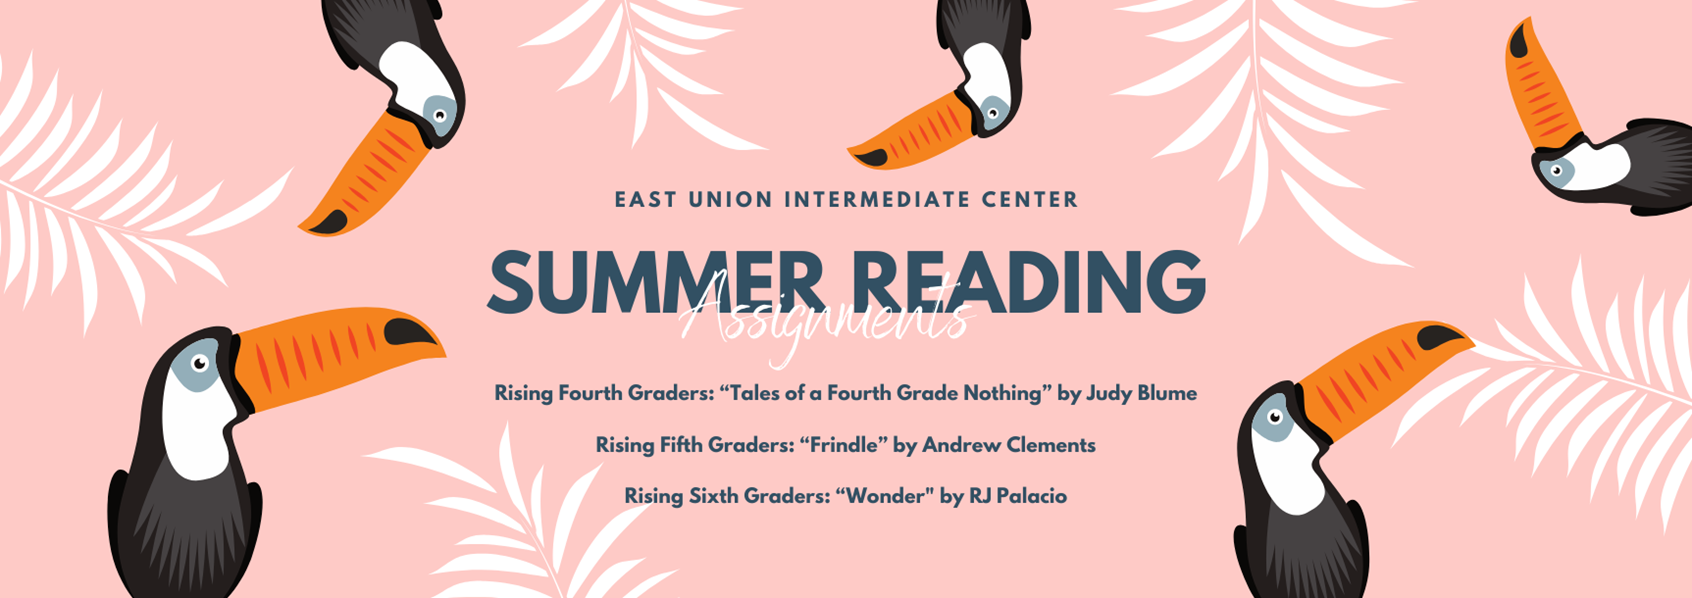 East Union Summer Reading 2020-2021